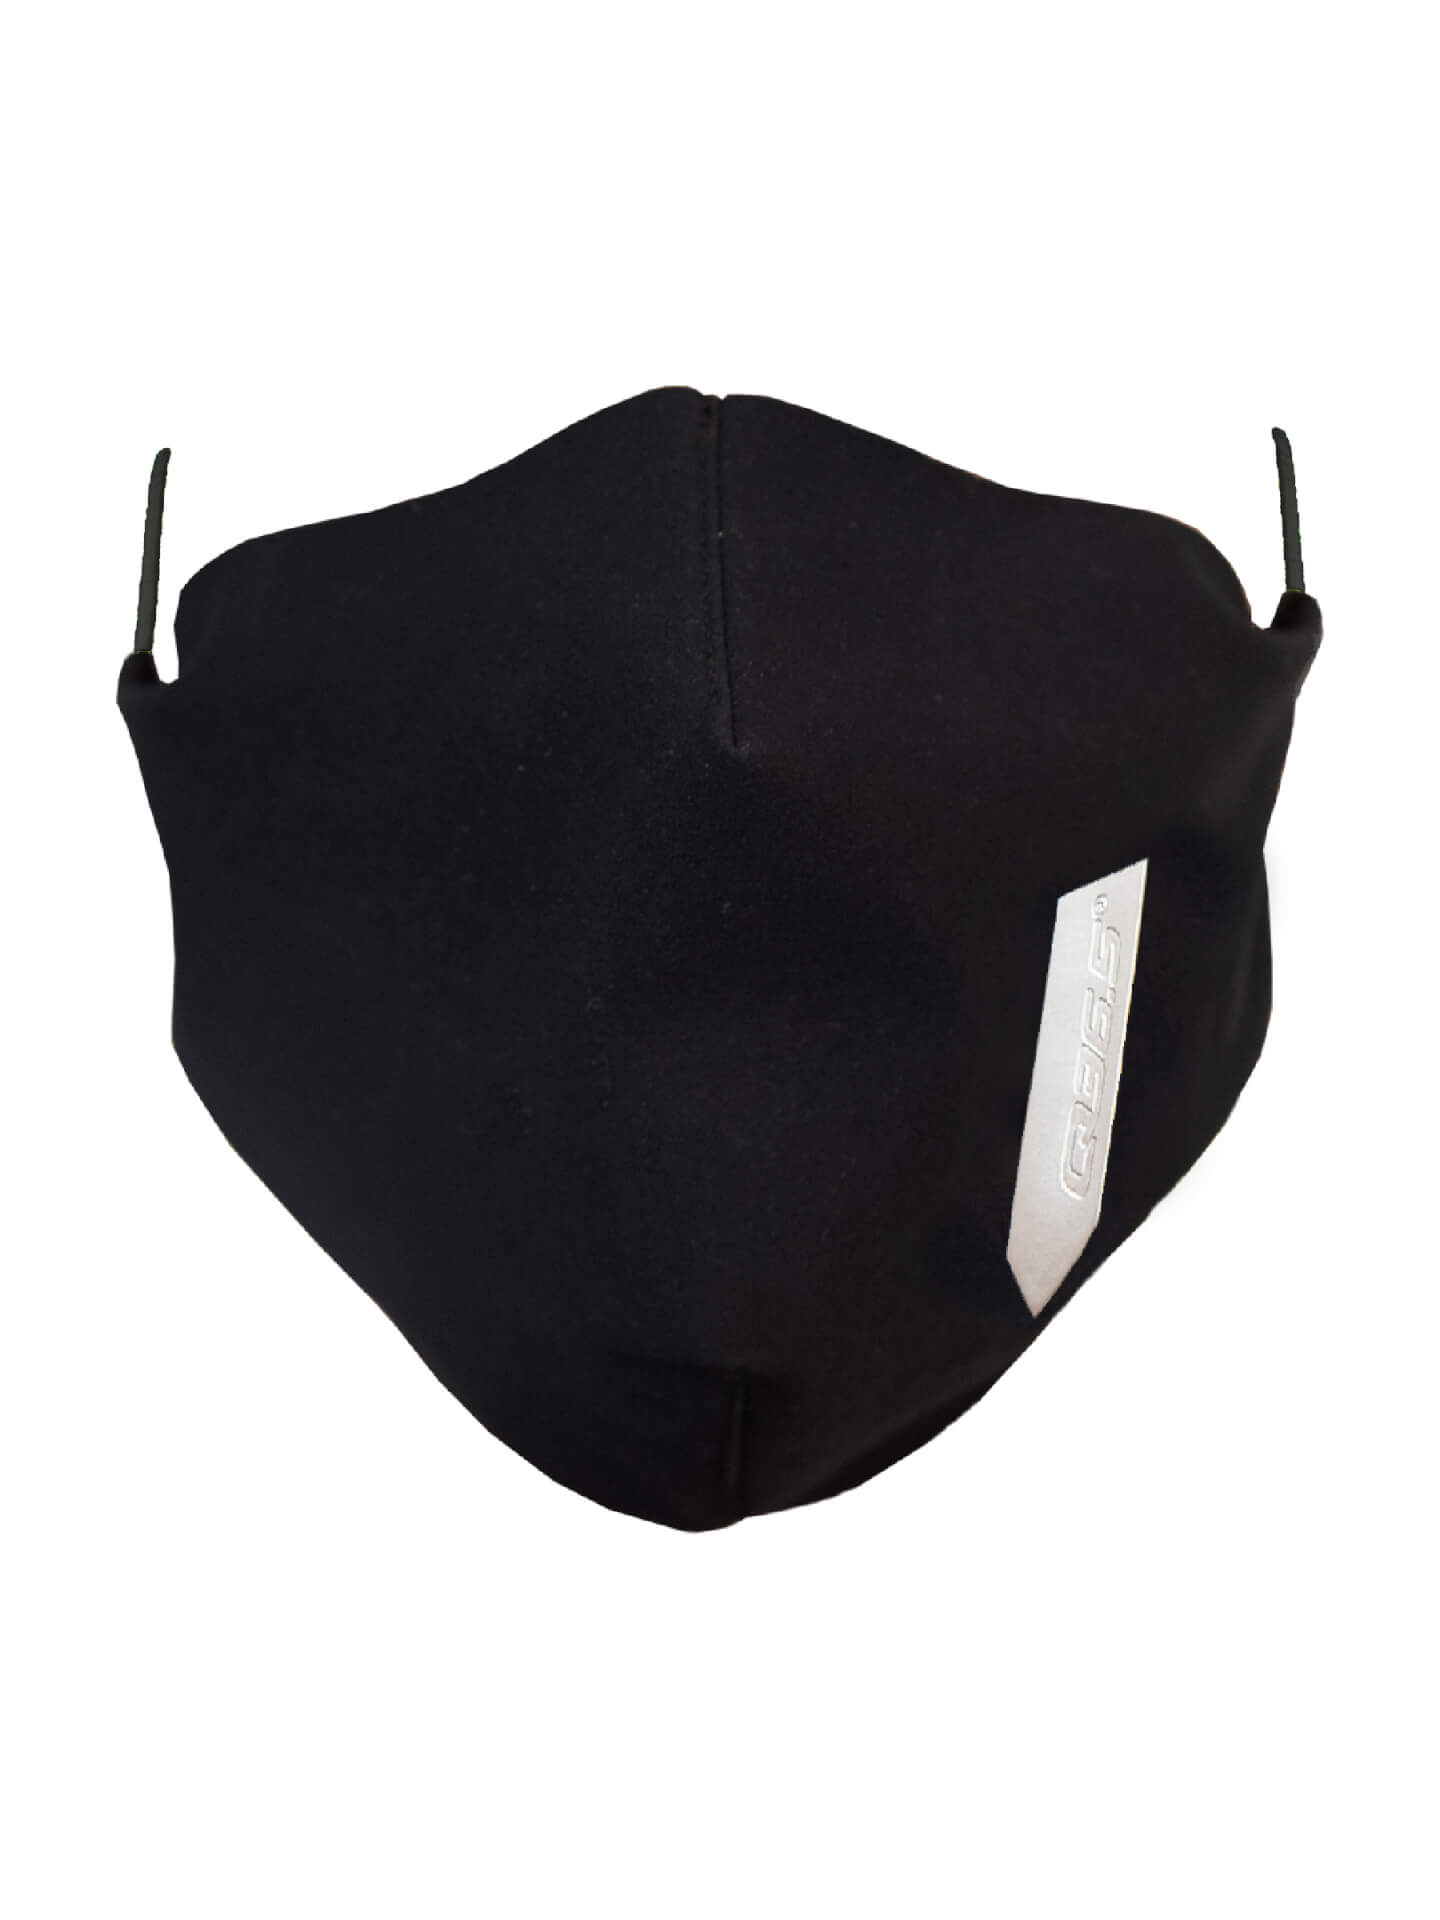 https://www.q36-5.com/shop/men/cycling-accessories/protective-mask/